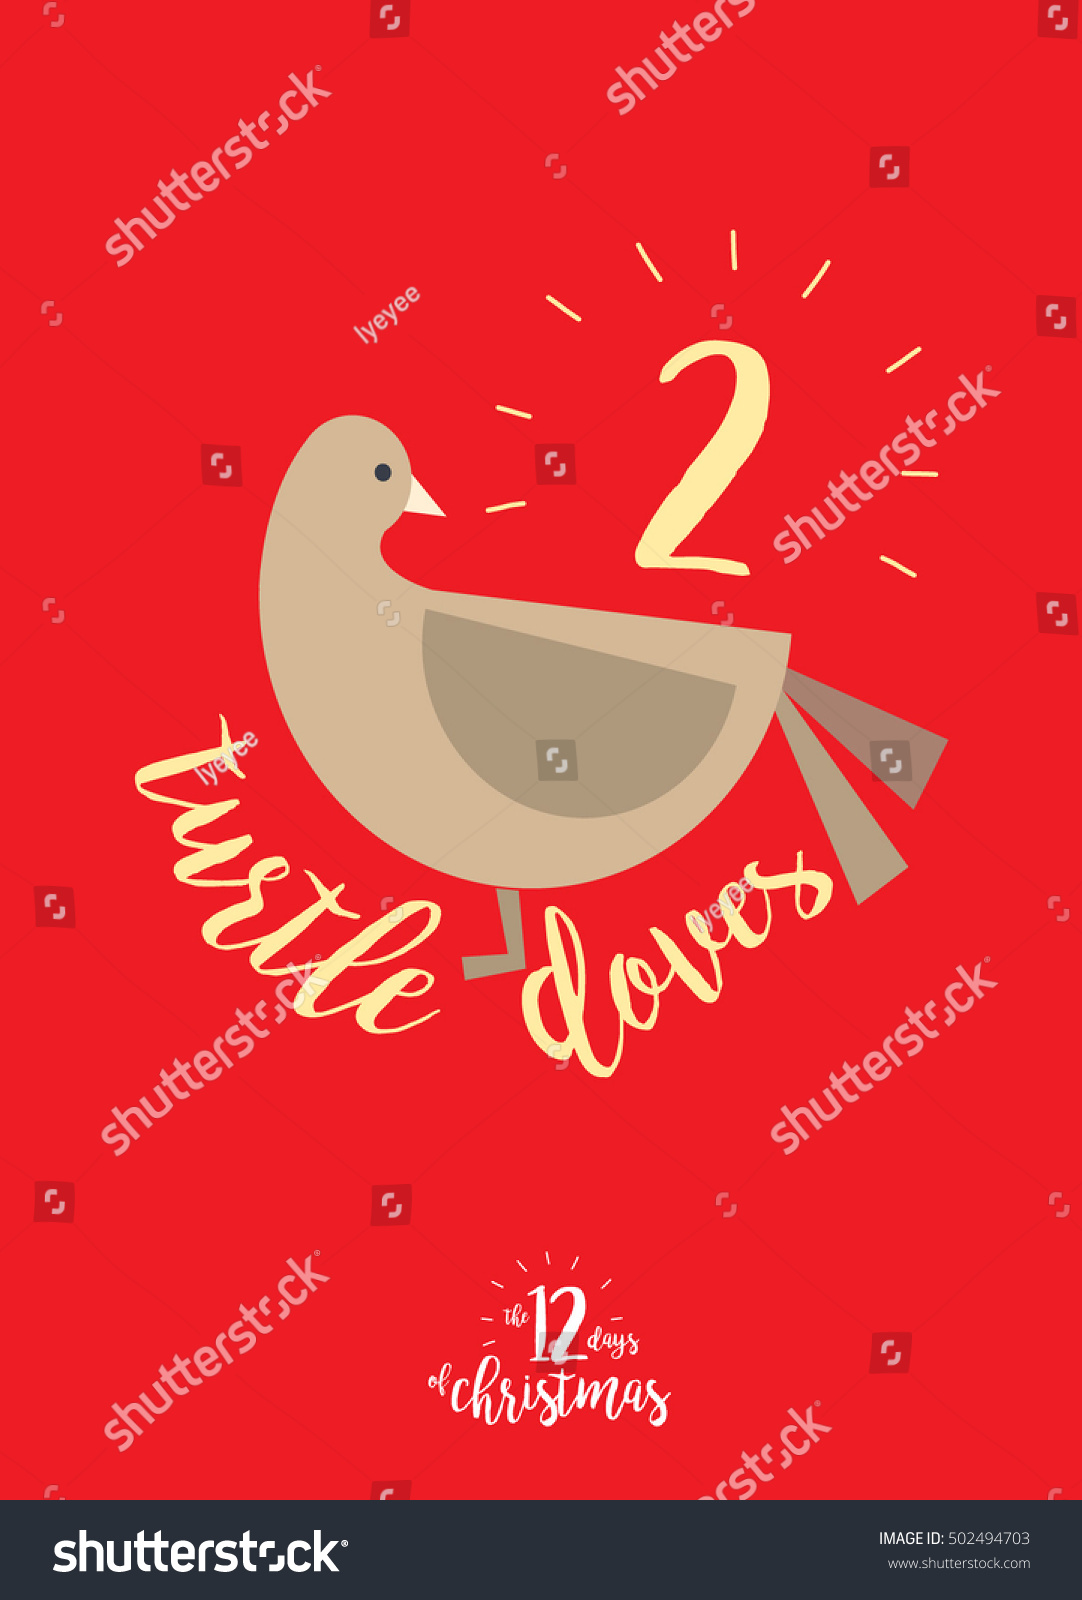 turtle dove template - the second day of christmas of the twelve days of